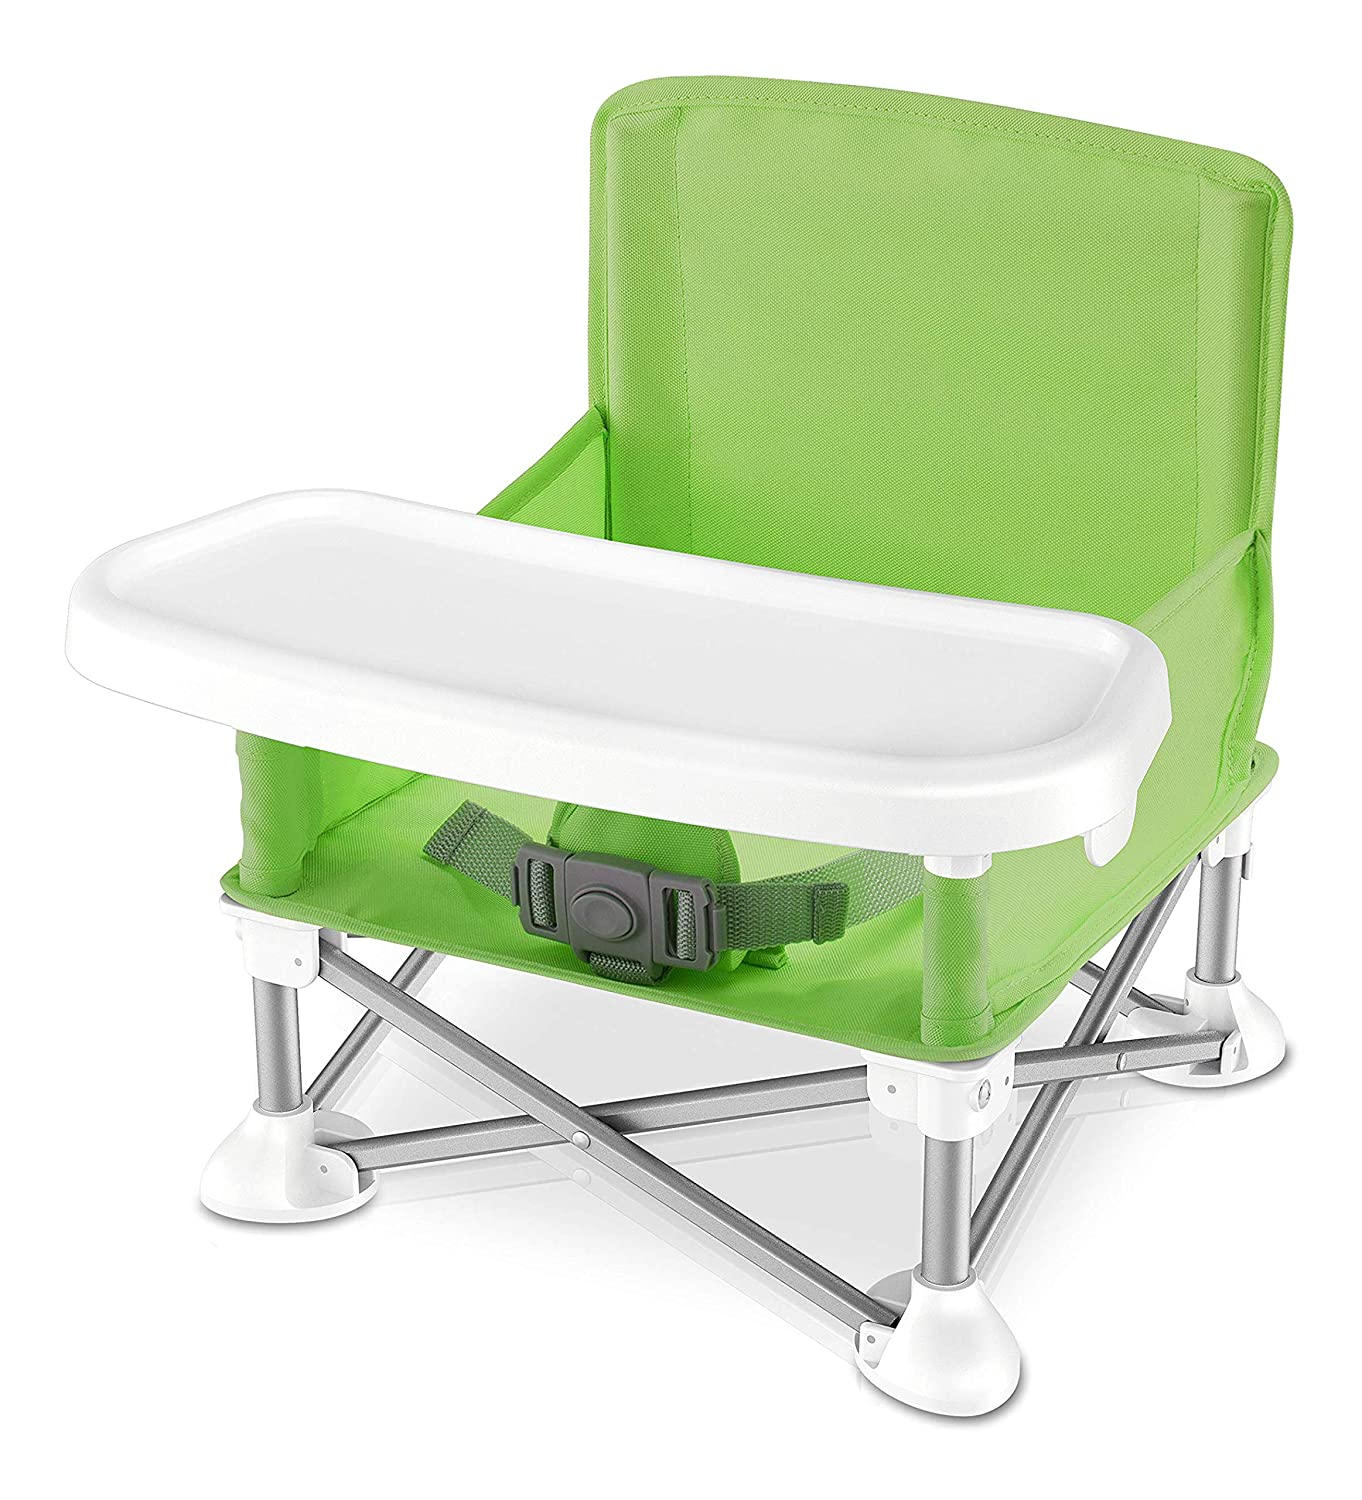 Amazon Com Baby Seat Booster High Chair Portable Space Saver High Chair Toddler Seat Portable High Chair Pop N Sit Folding Feeding Booster W Safety Belt Food Tray Travel Bag Serenelife Slbs66g Green Automotive